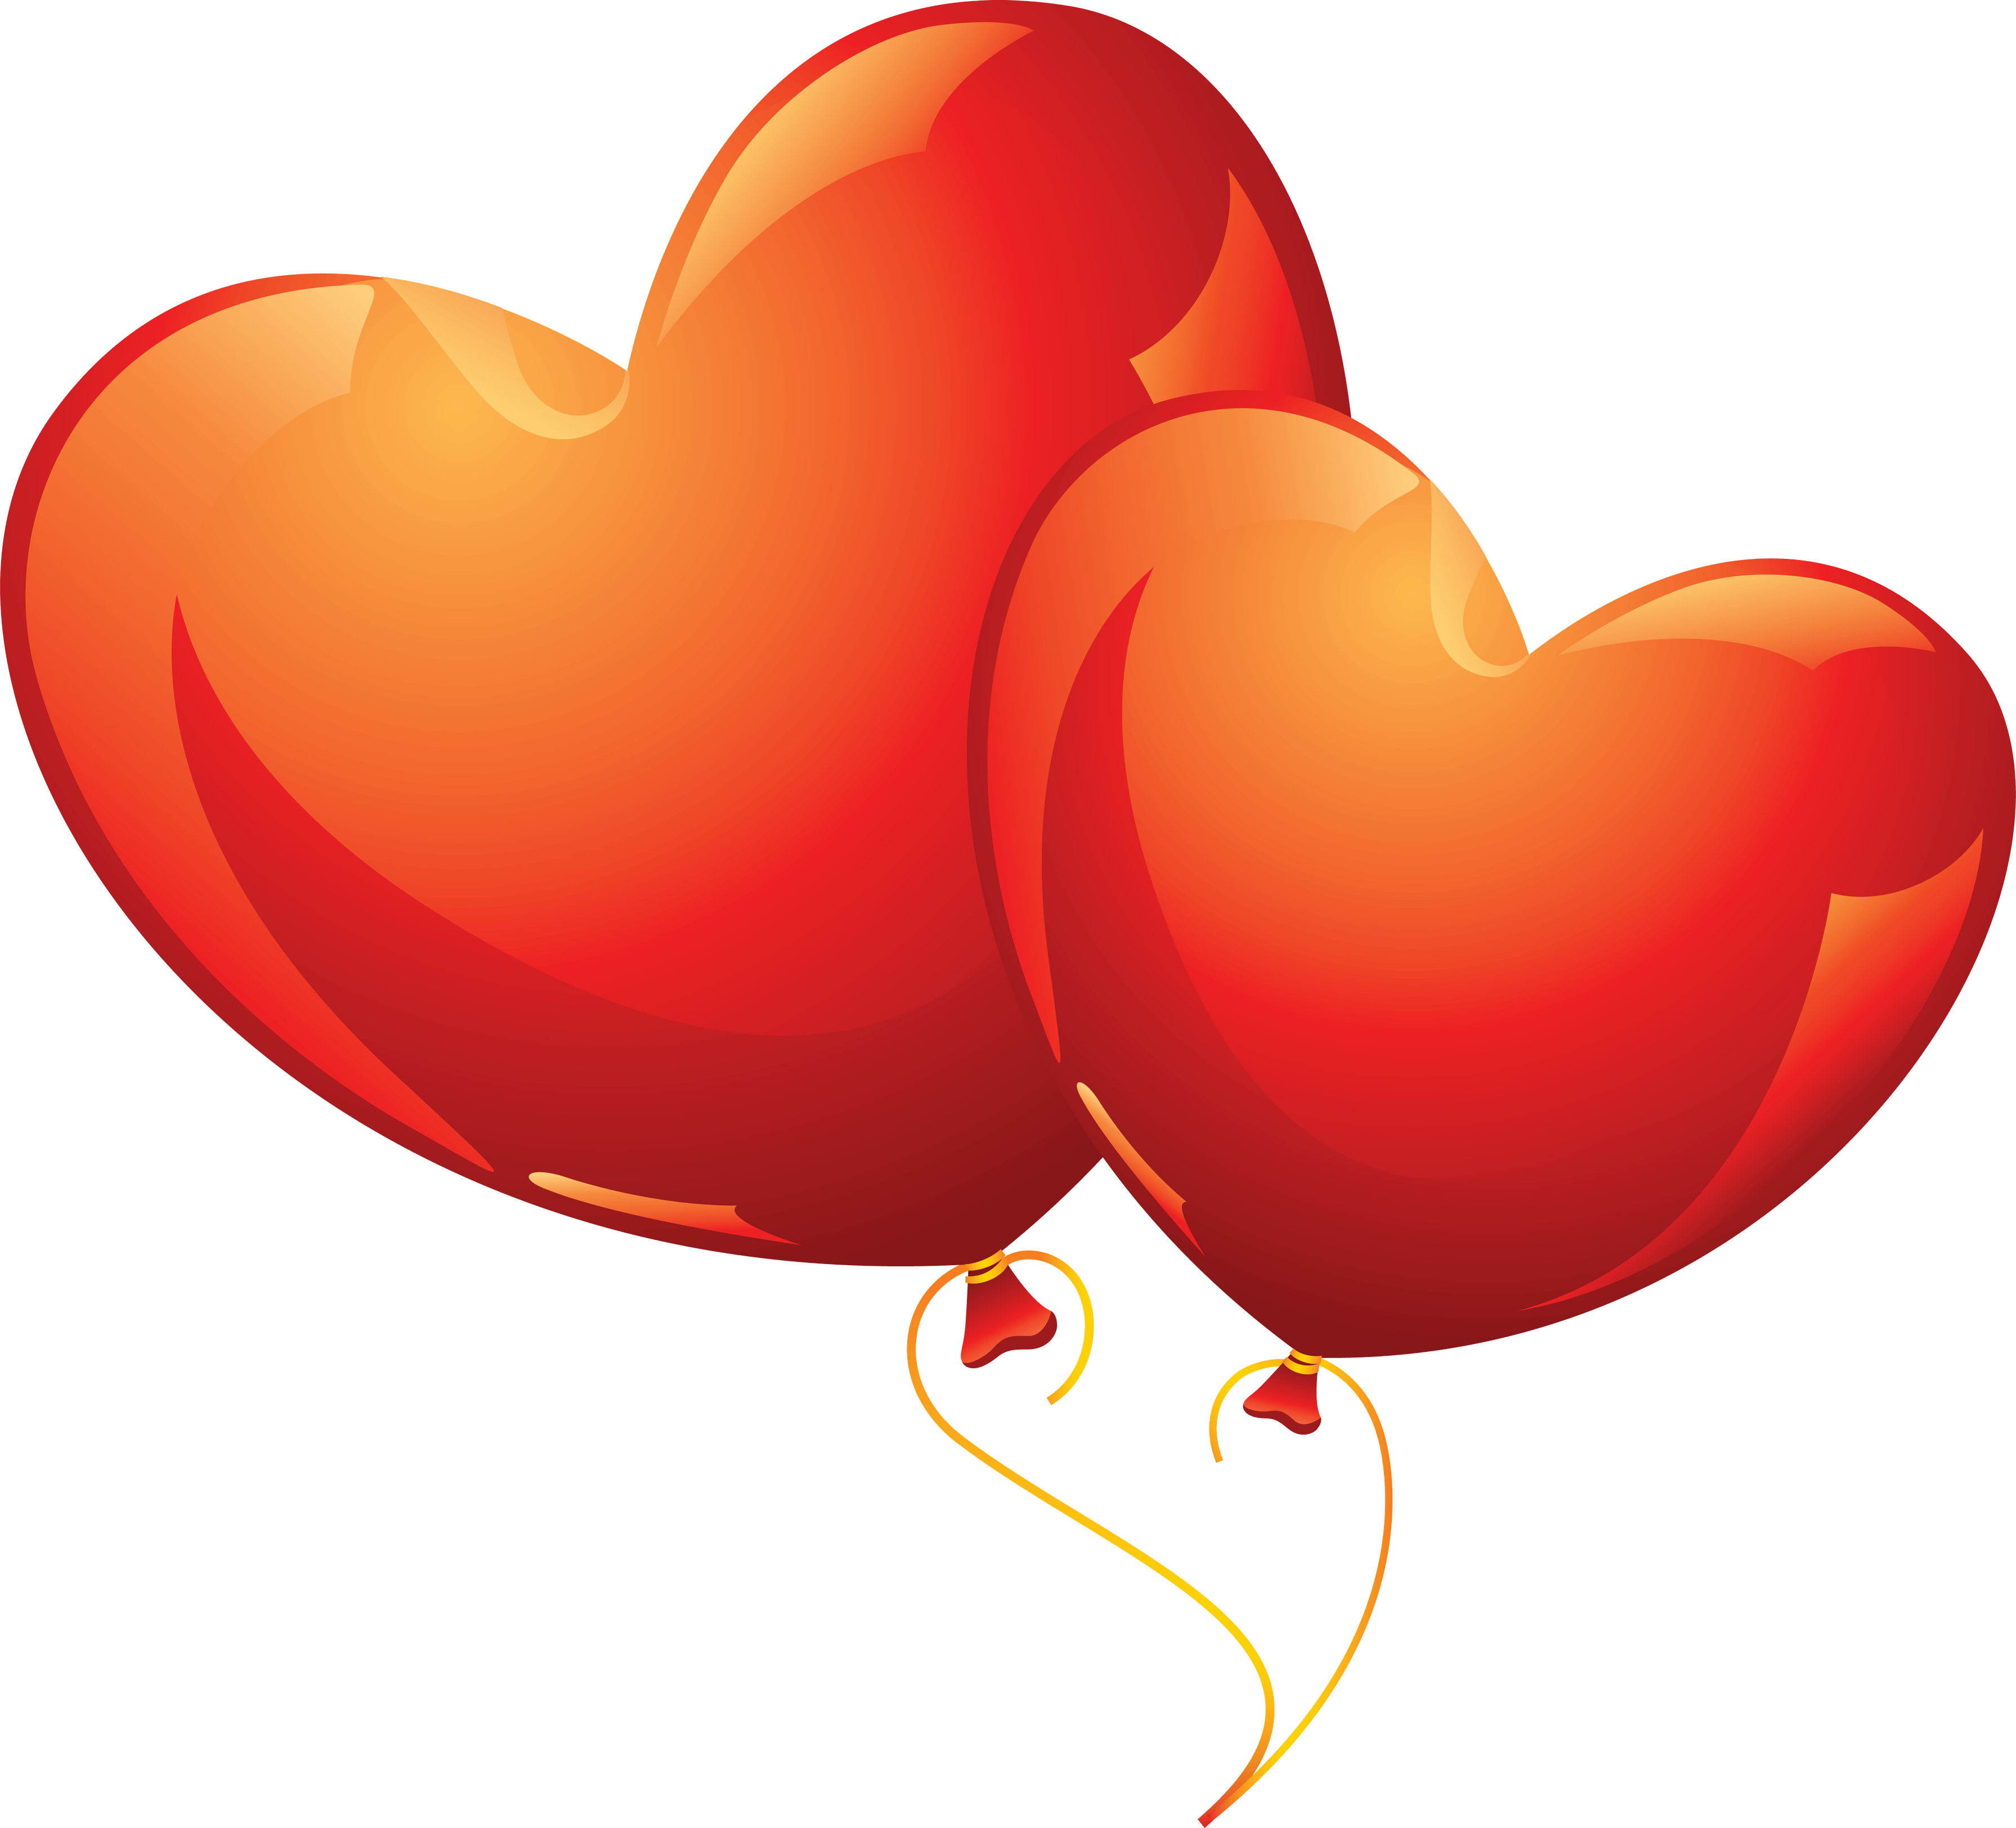 Heart balloons clipart png Barbie Silhouette Balloons at GetDrawings.com | Free for personal ... png